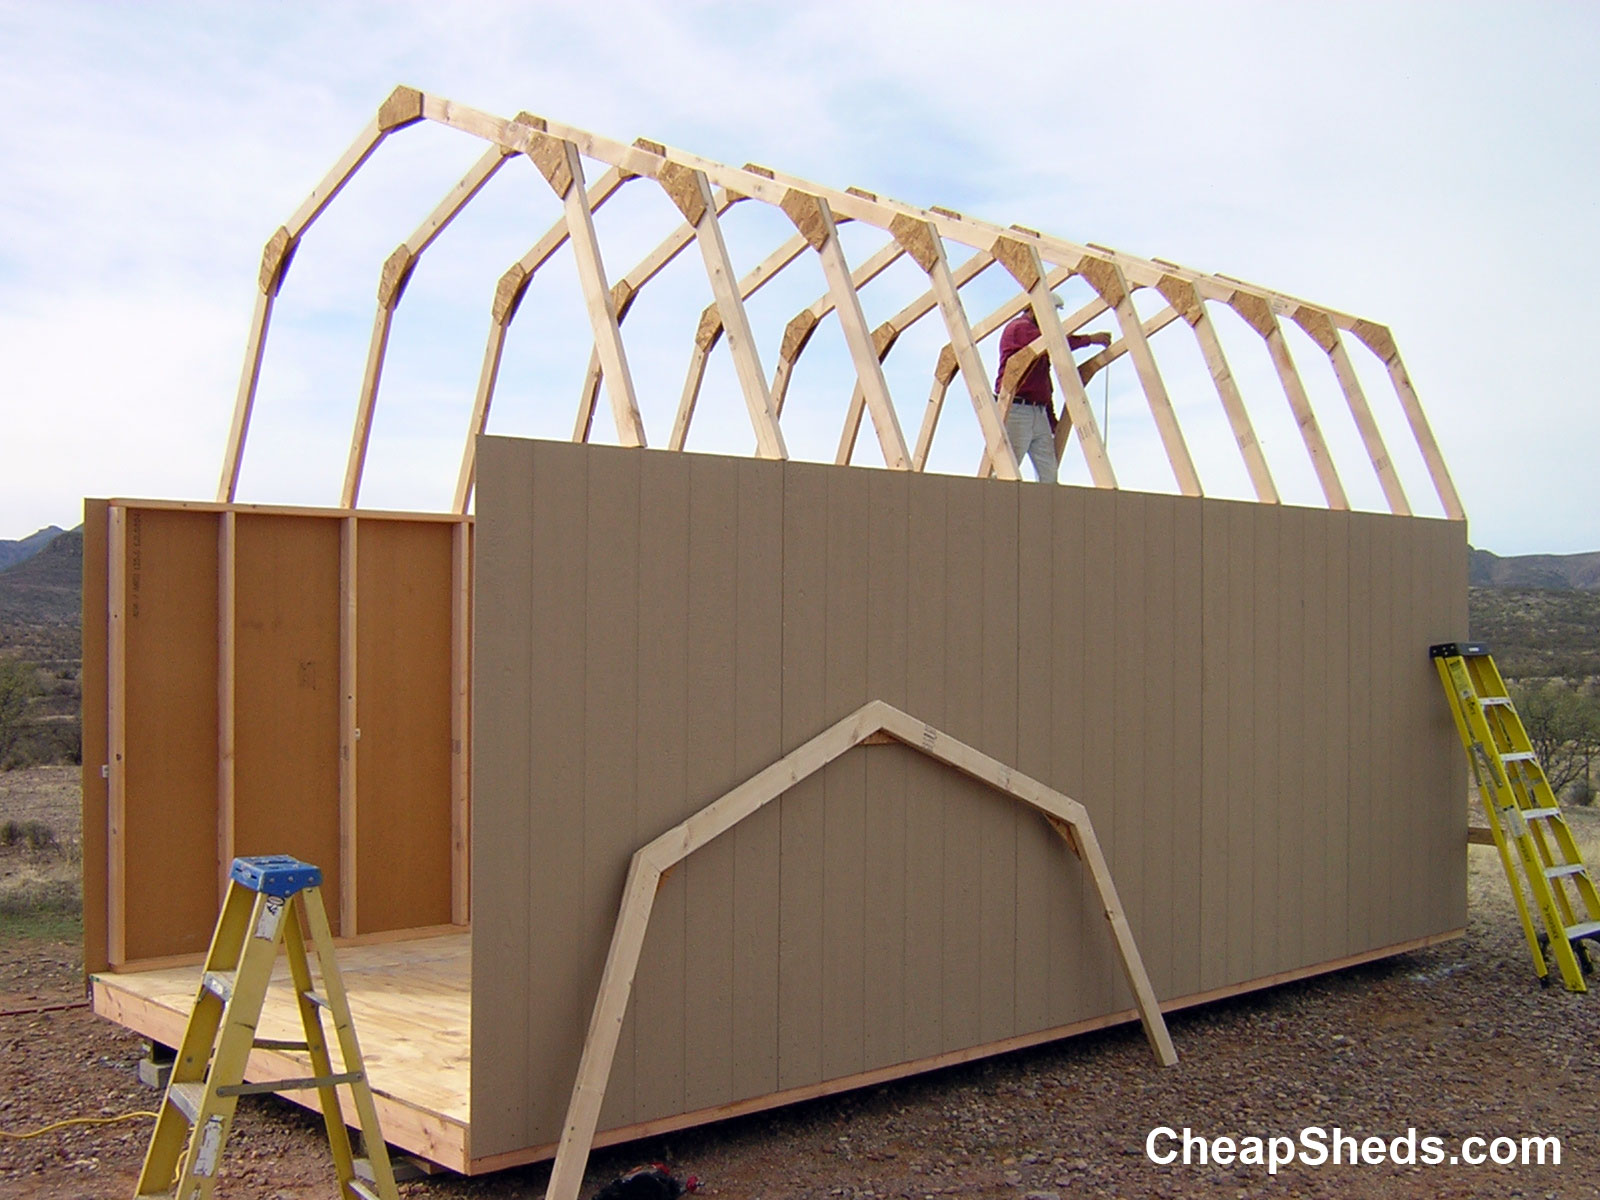 Where Buy Cheap Sheds